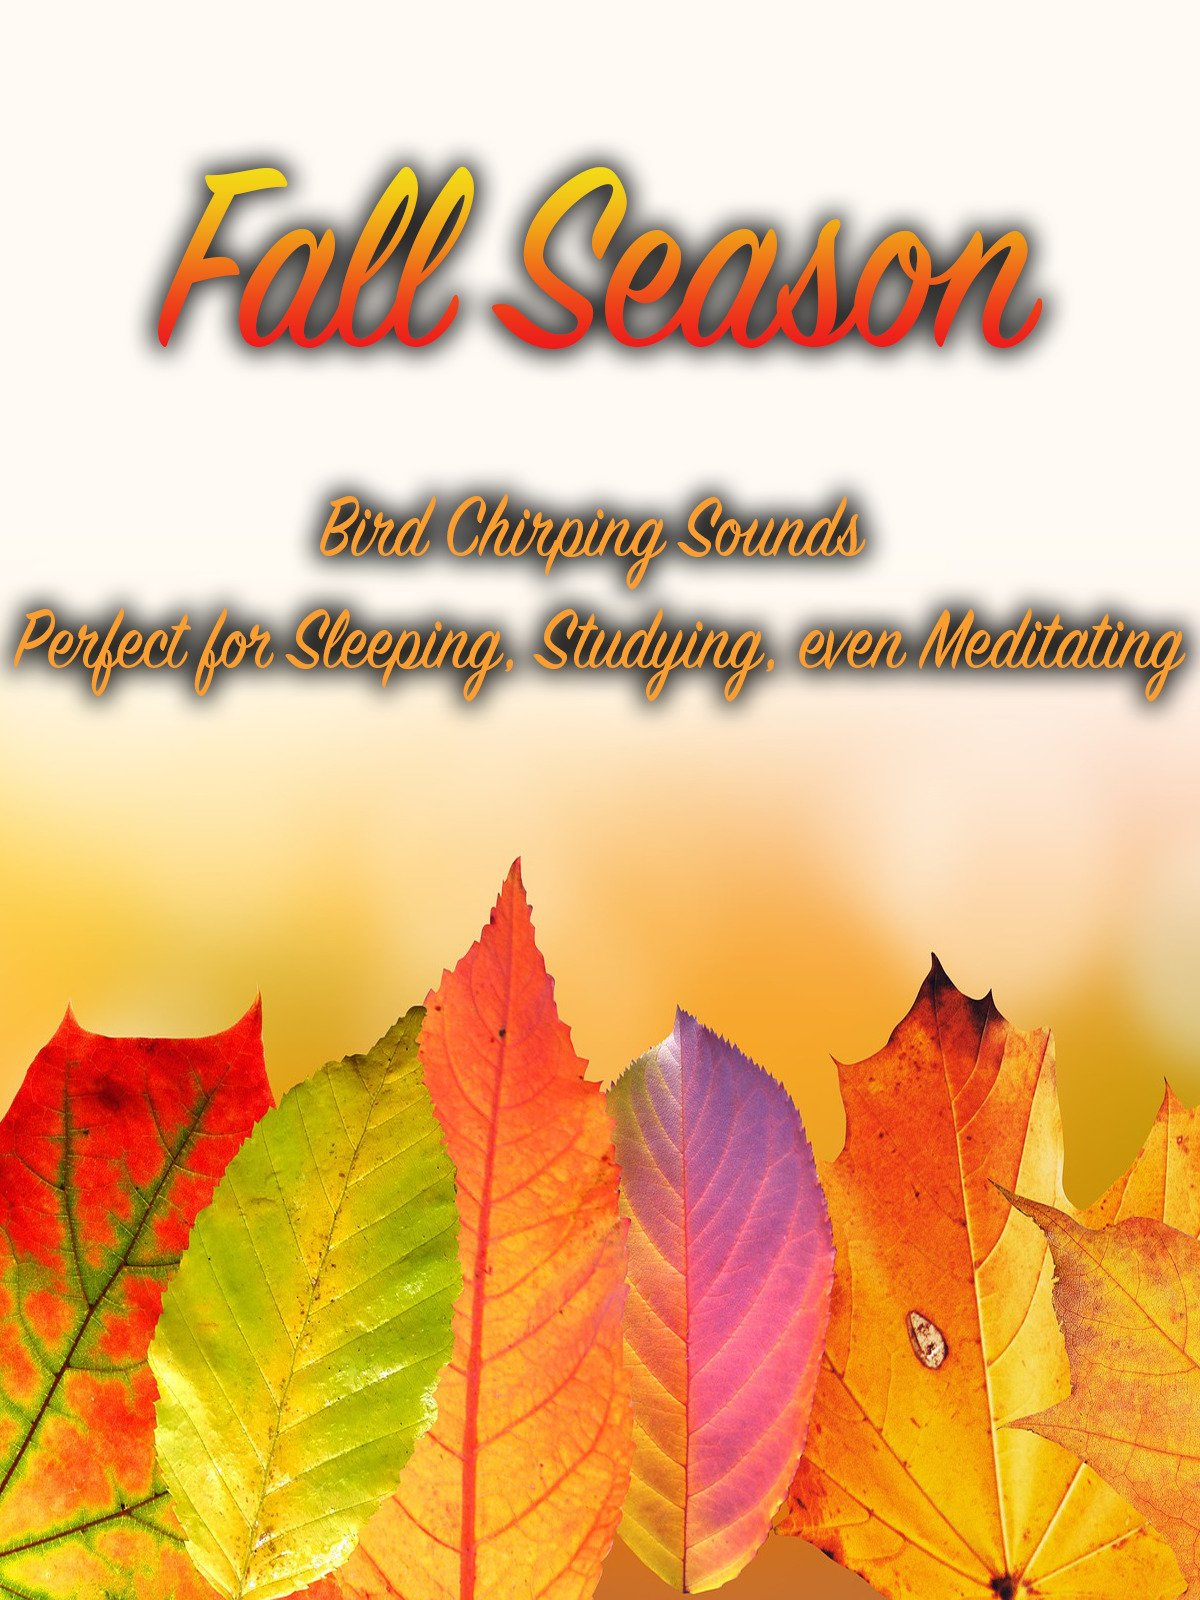 Fall Season Bird Chirping Sounds Perfect for Sleeping, Studying, even Meditating